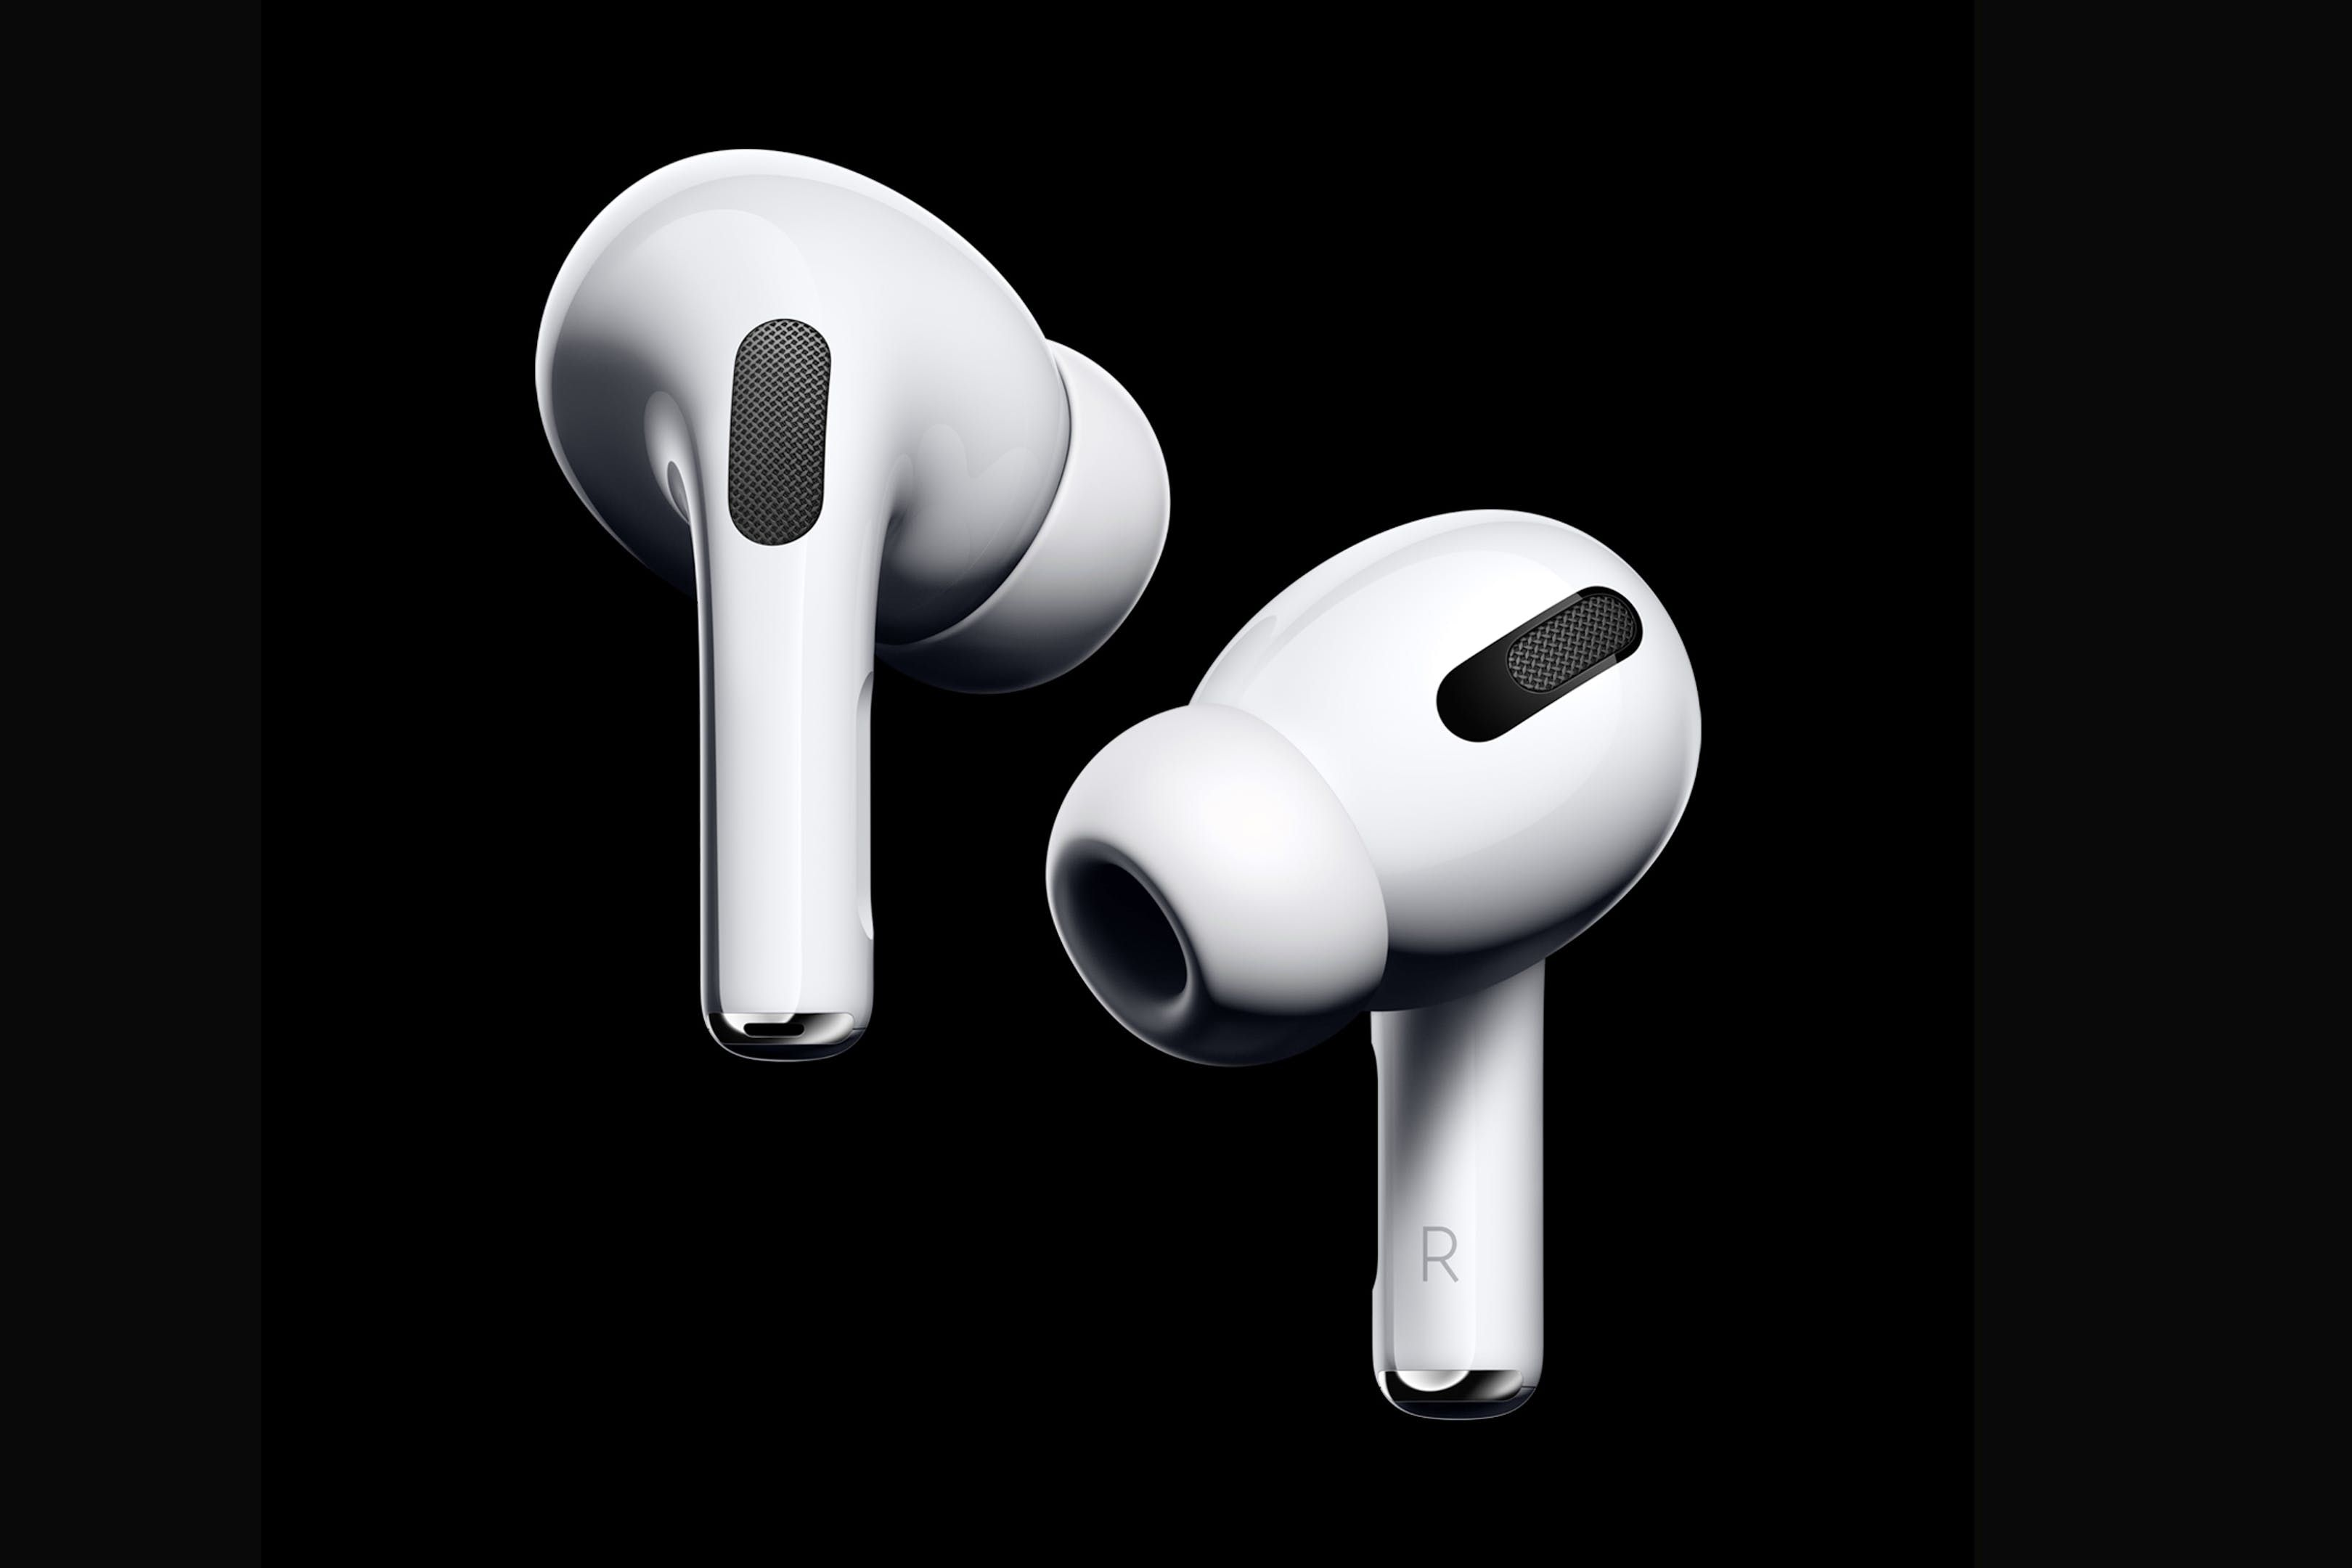 Why Apple S Airpods Pro Are A Game Changer For Frequent Travelers Airpods Pro Earbuds Noise Cancelling